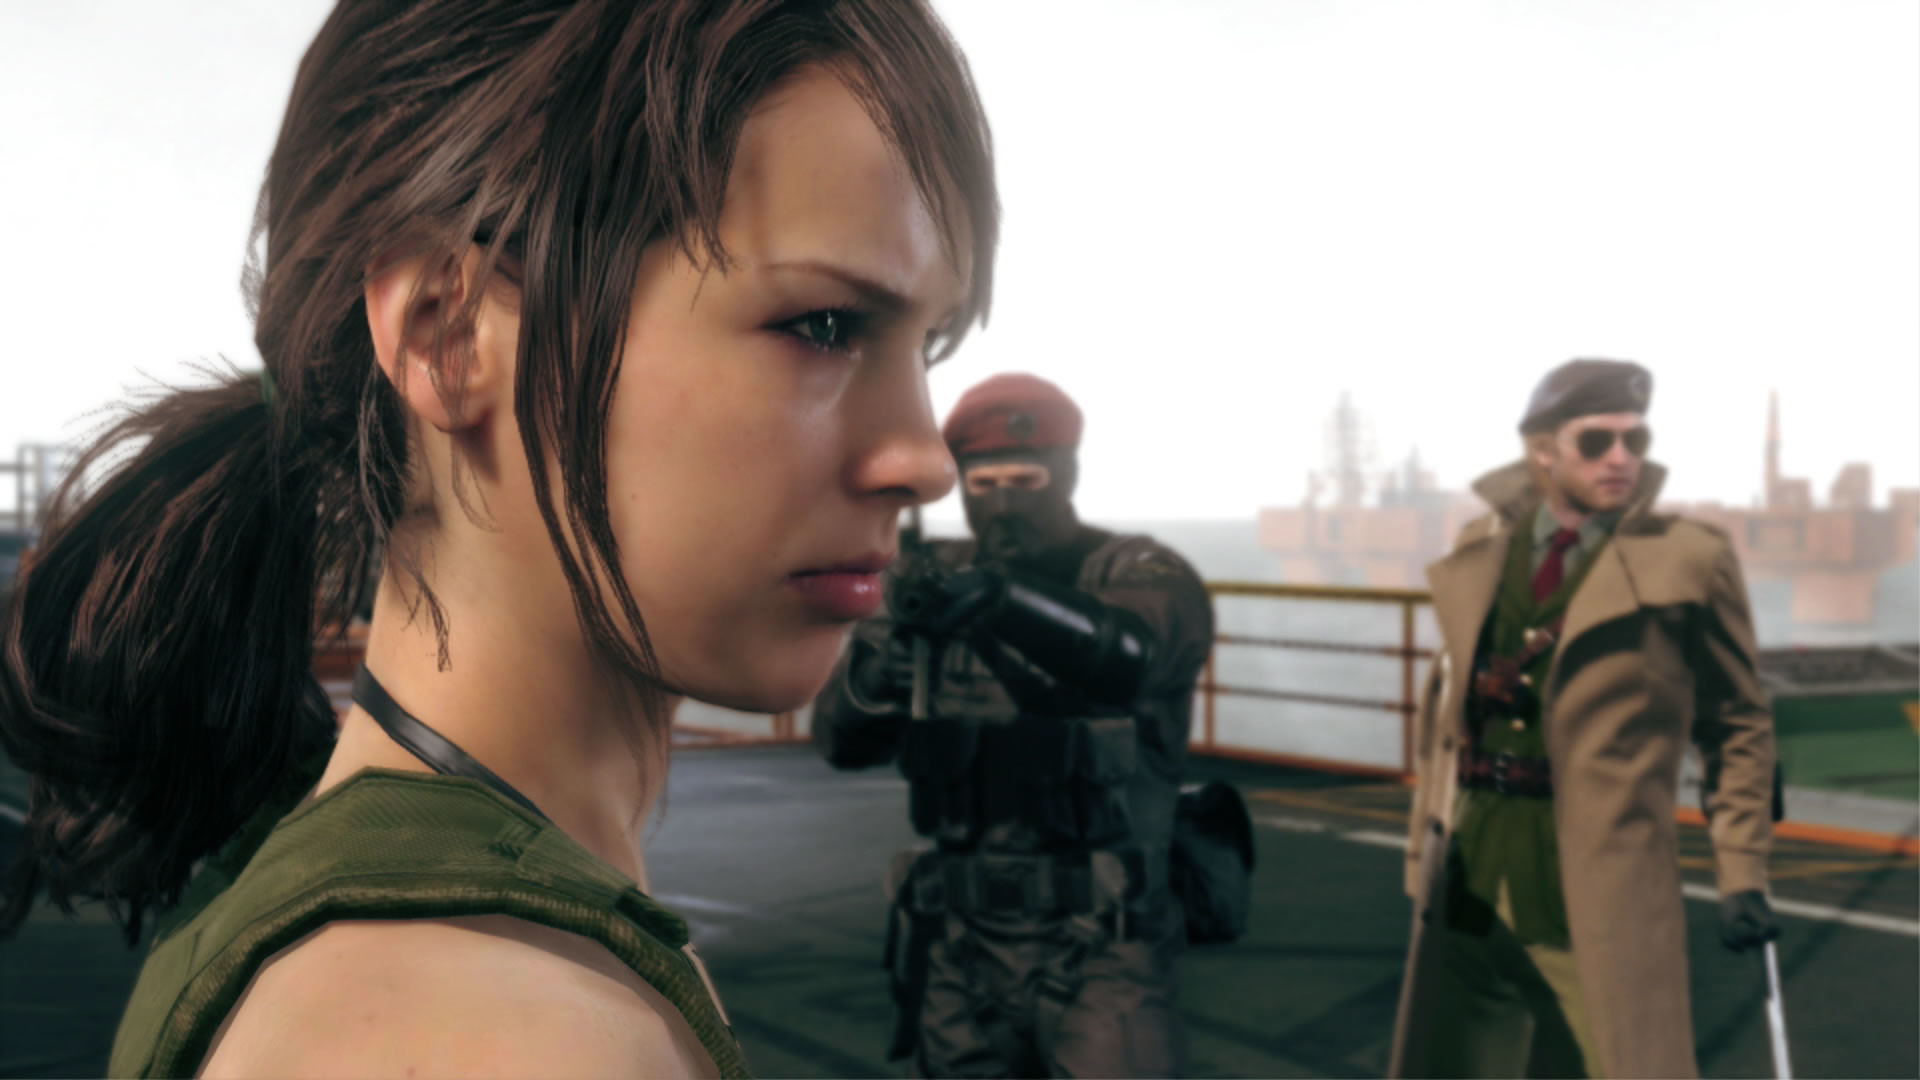 1920x1080 Metal Gear Solid V: The Phantom Pain high definition wallpapers